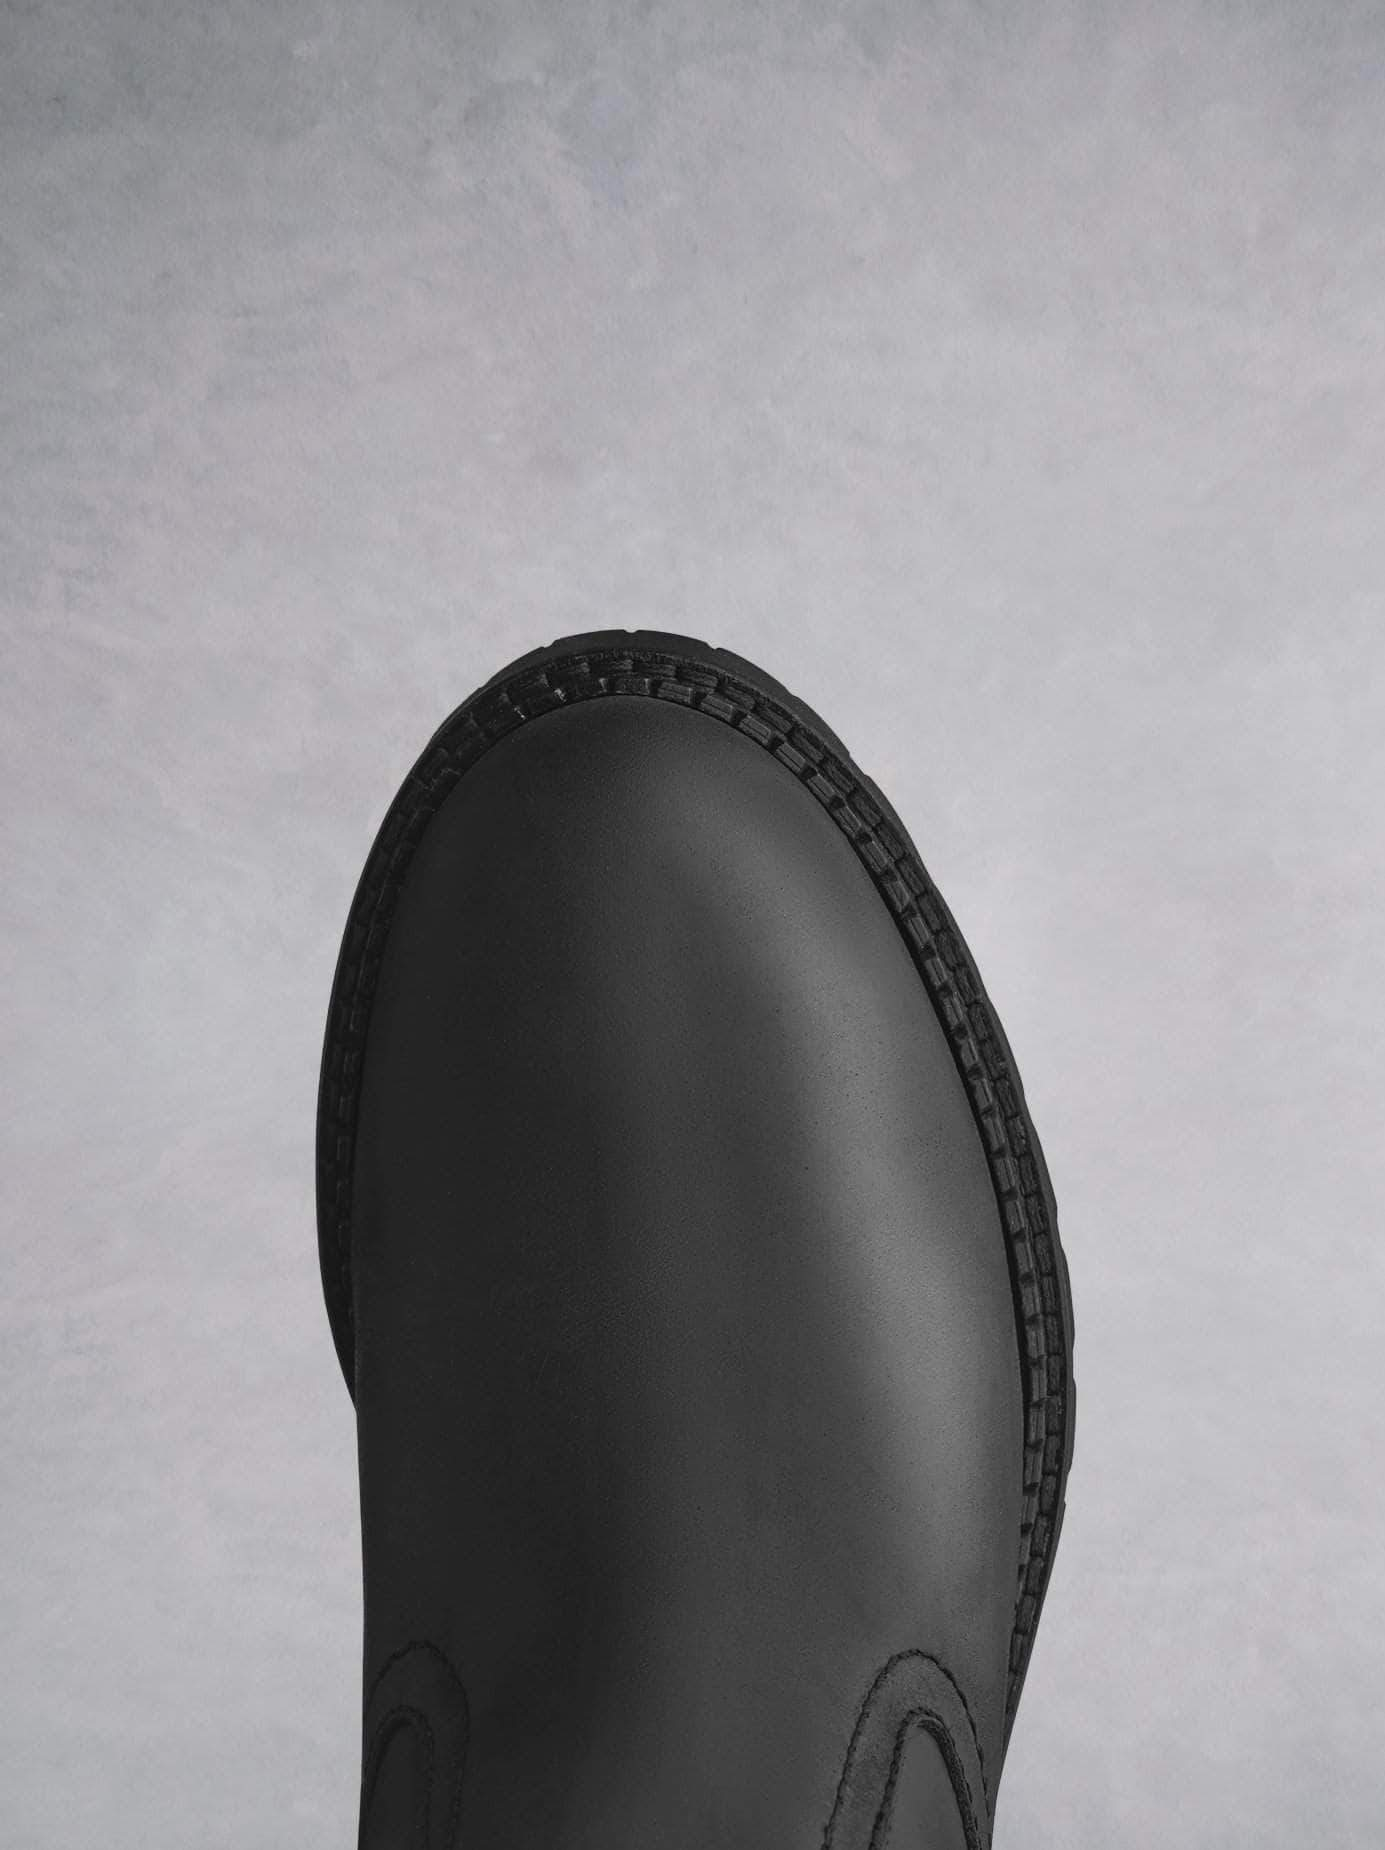 Asham Black Leather - Glossy black leather boots with tread sole.